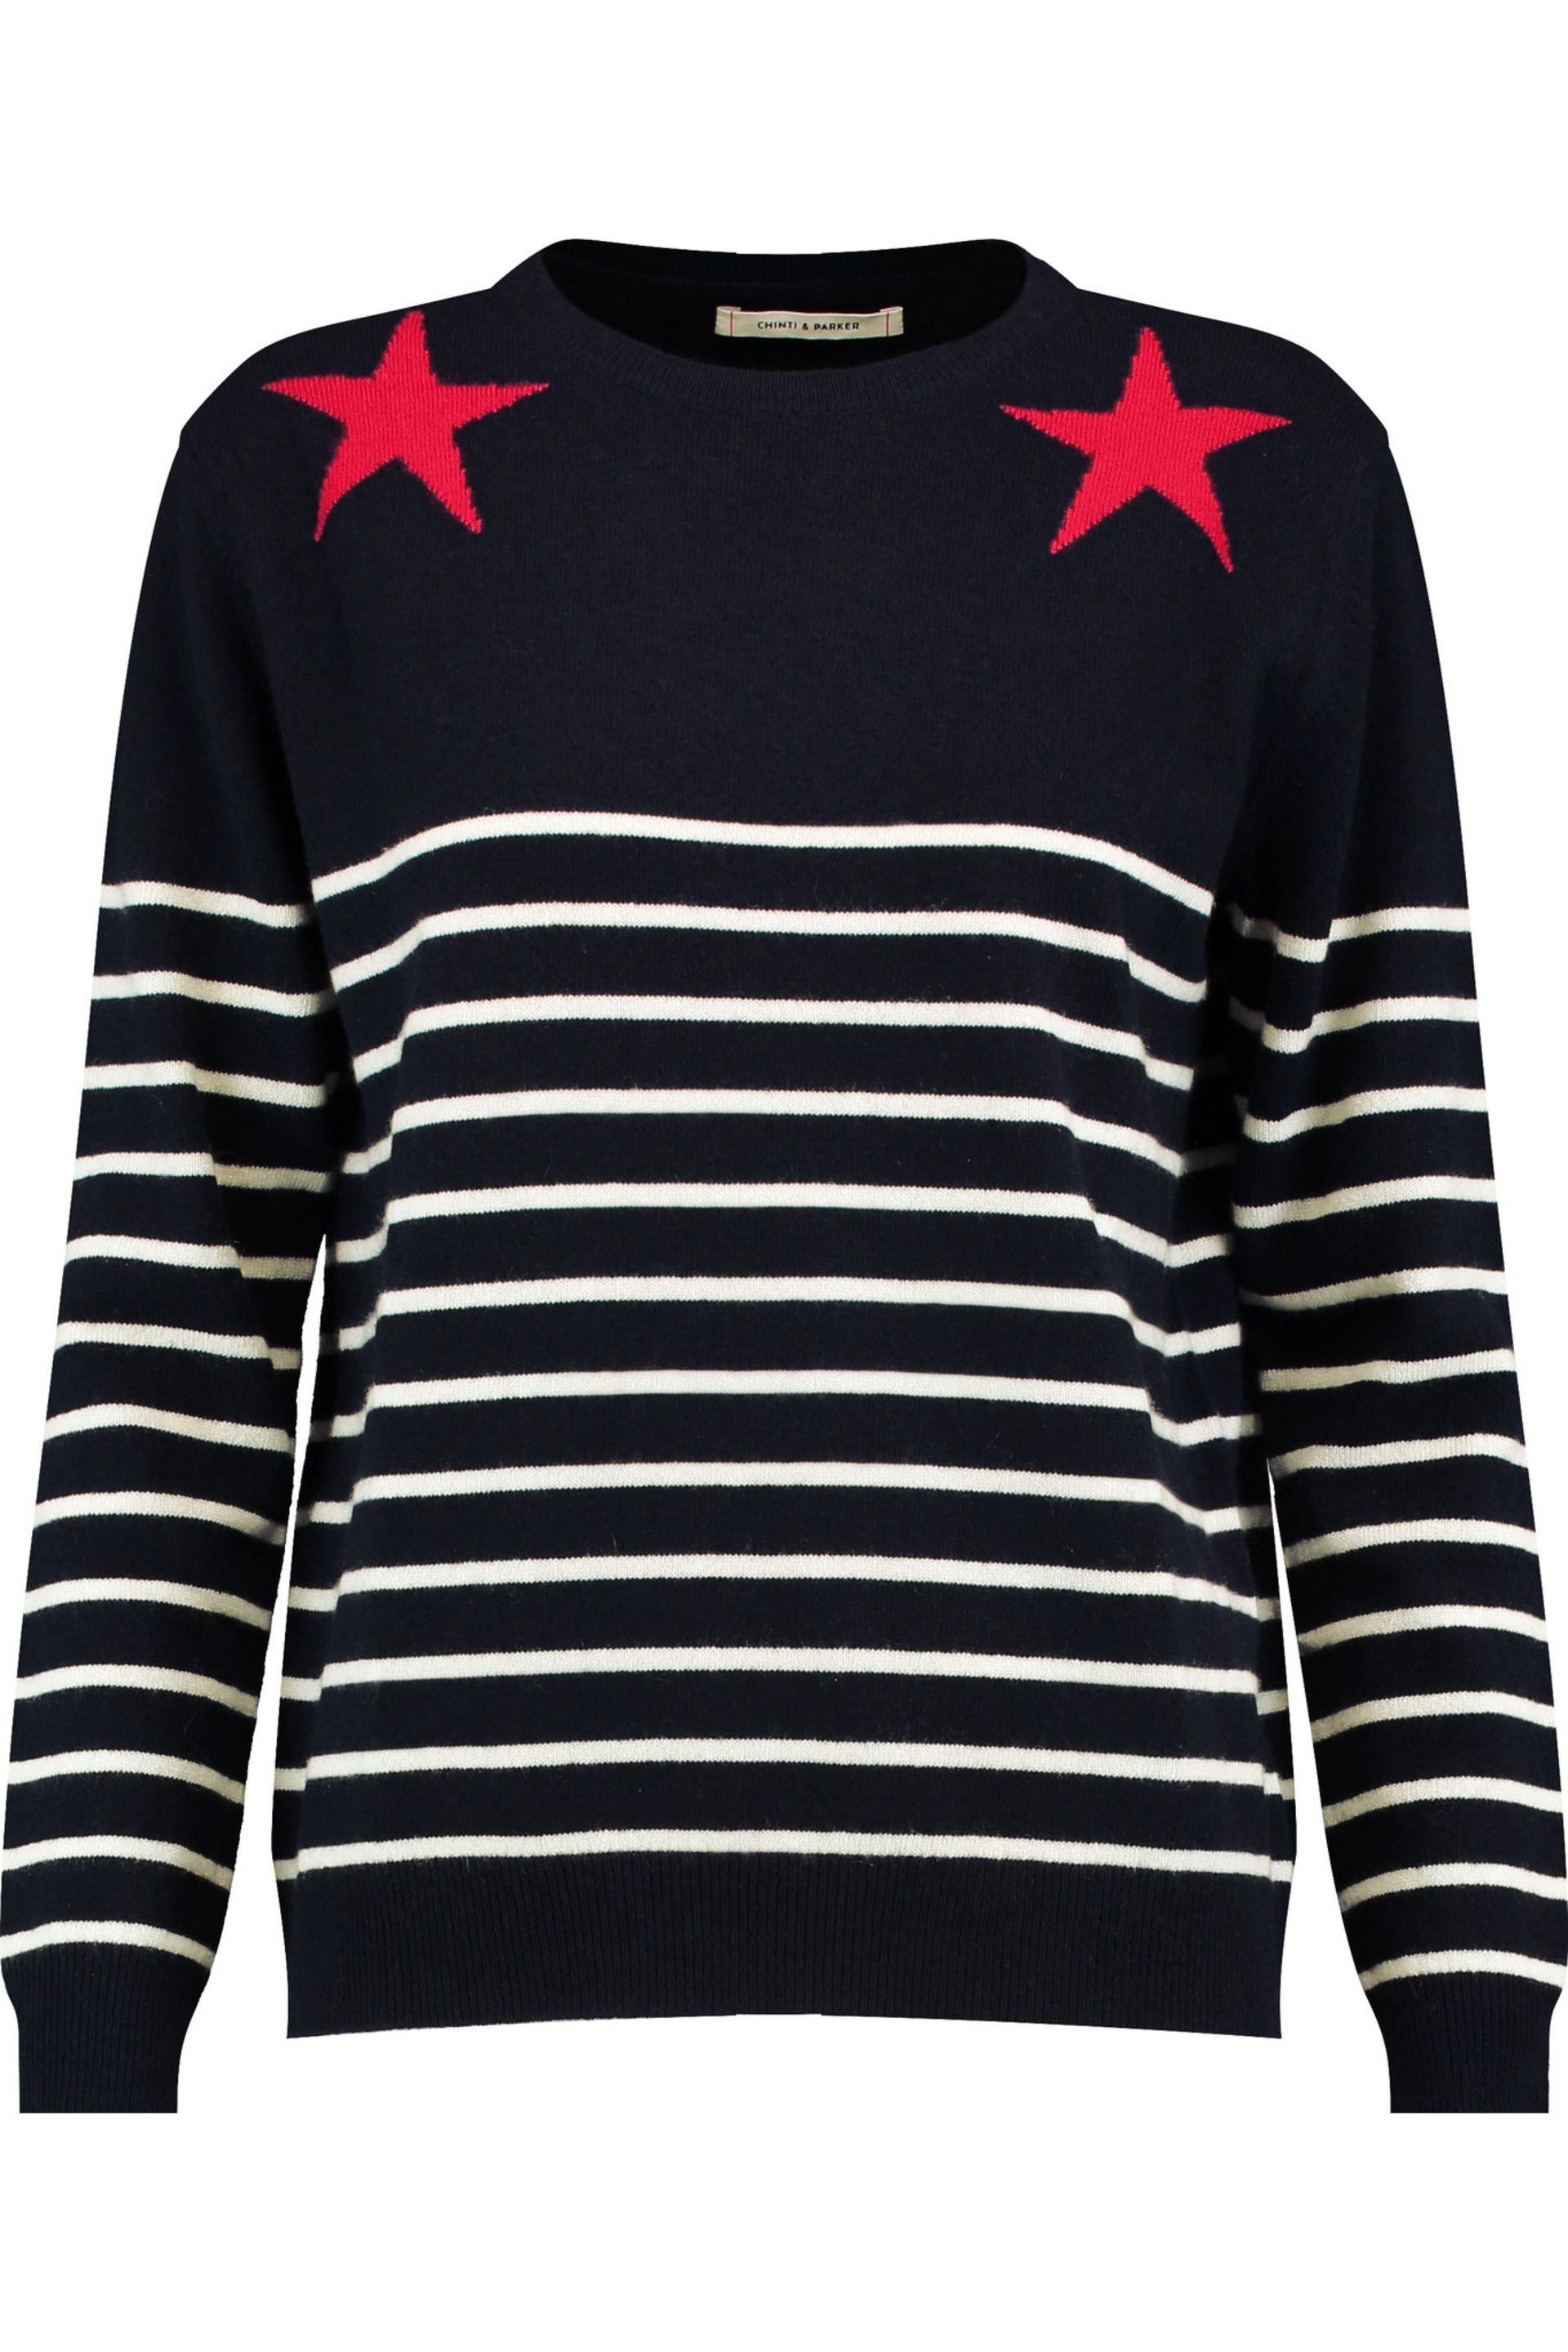 Buy Cheap Choice Chinti And Parker Woman Intarsia Merino Wool Sweater Gray Size XL Chinti and Parker Discount Official Site Buy Cheap Get To Buy Good Selling Cheap Price mhrlU